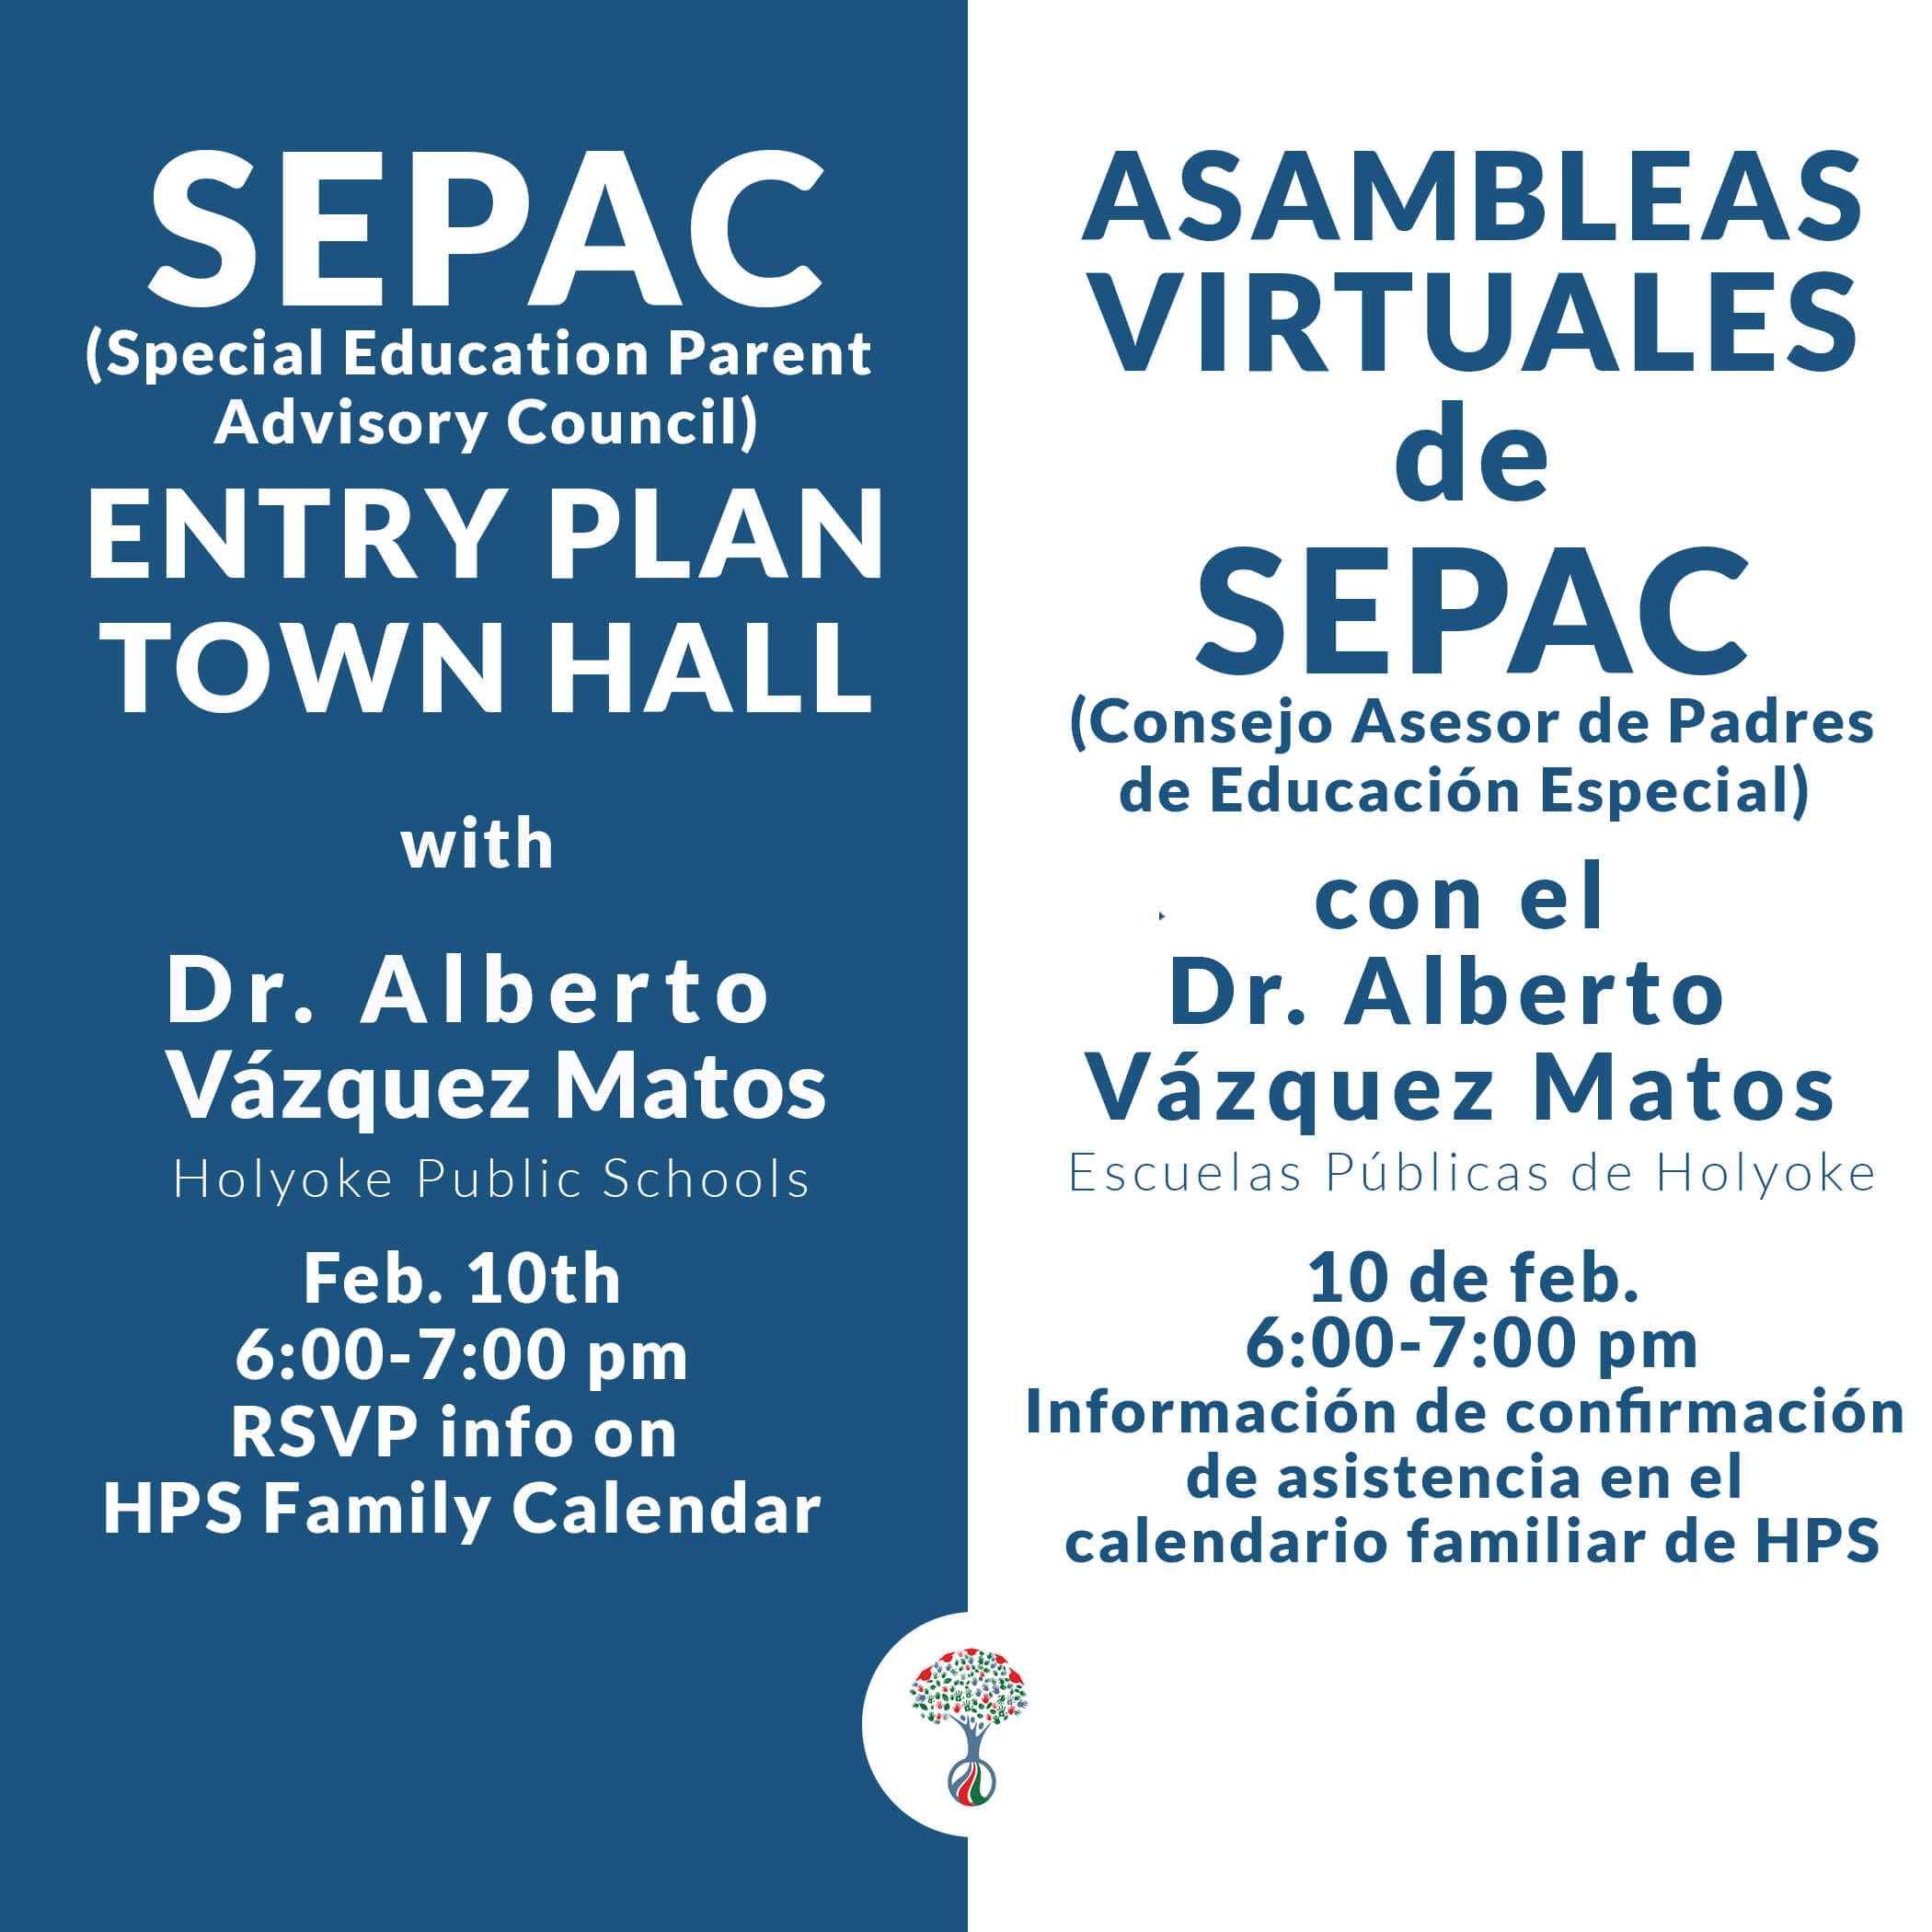 Special Education Parent Advisory Council (SEPAC) Entry Plan Town Hall